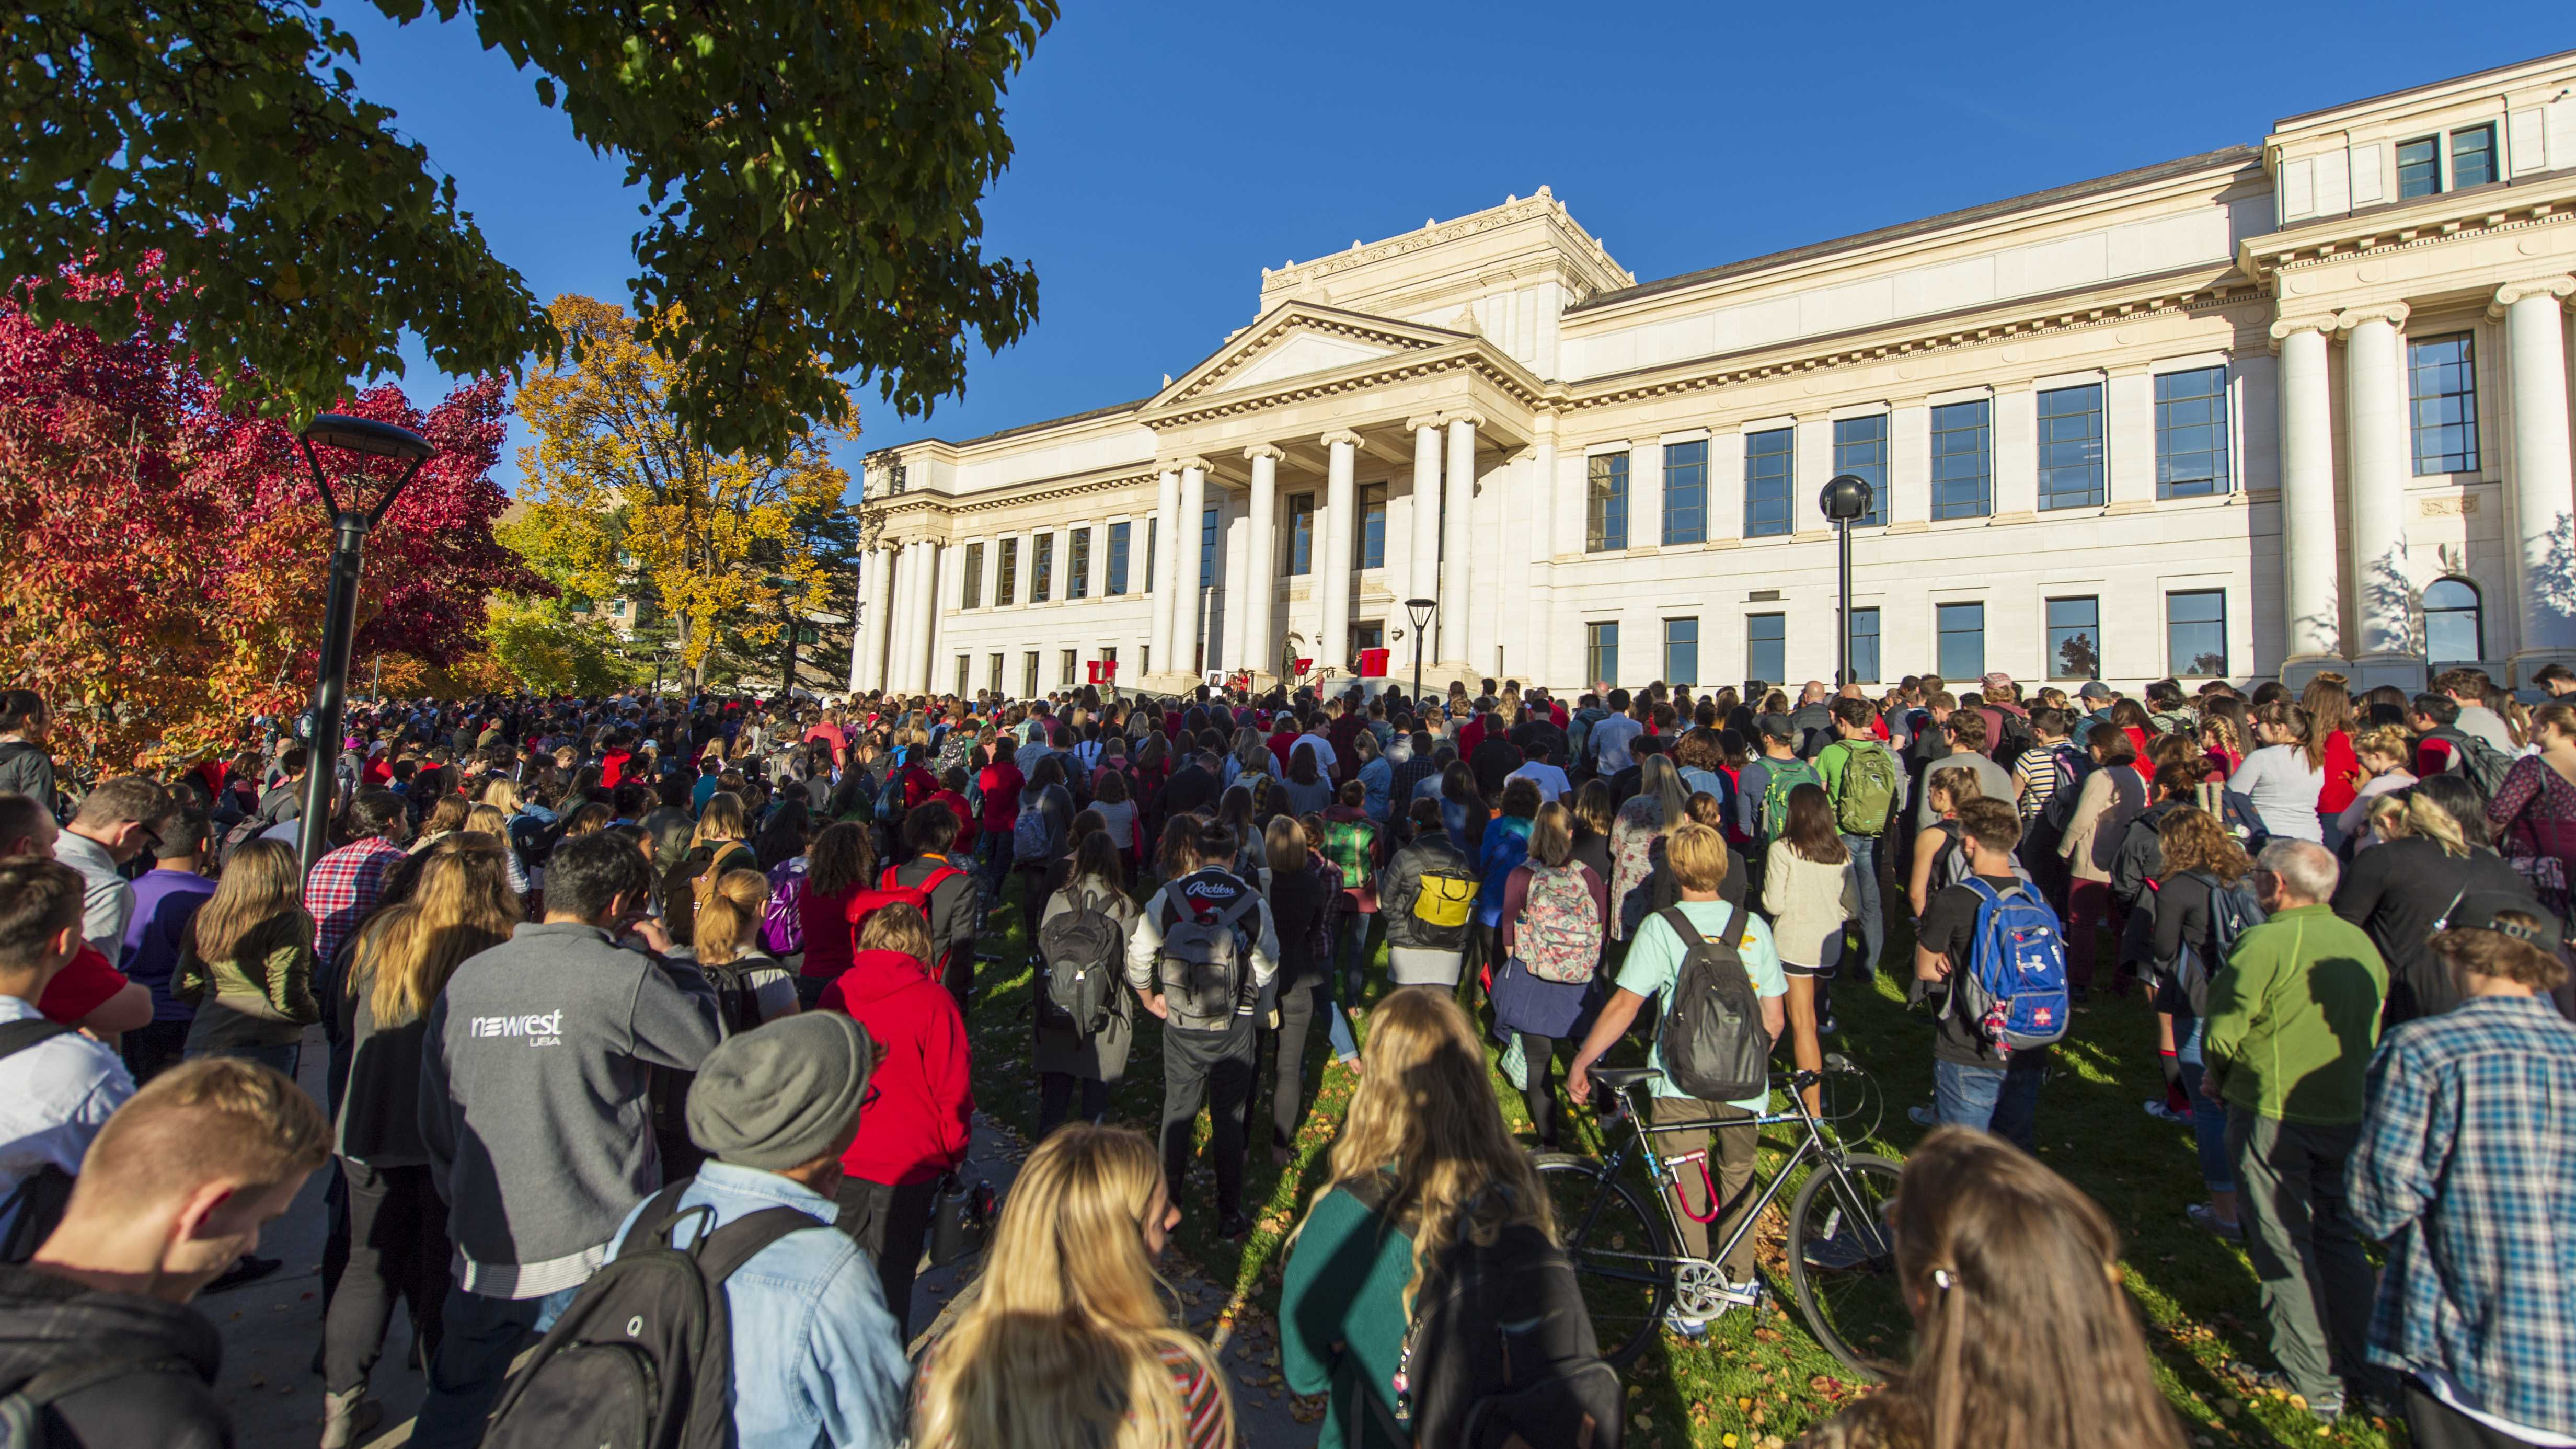 Students, staff, family and friends attend a vigil on the steps of the Park Building for Lauren McCluskey who was tragically killed on campus at The University of Utah in Salt Lake City, Utah on Wednesday, Oct. 24, 2018. (Photo by Kiffer Creveling | The Daily Utah Chronicle)